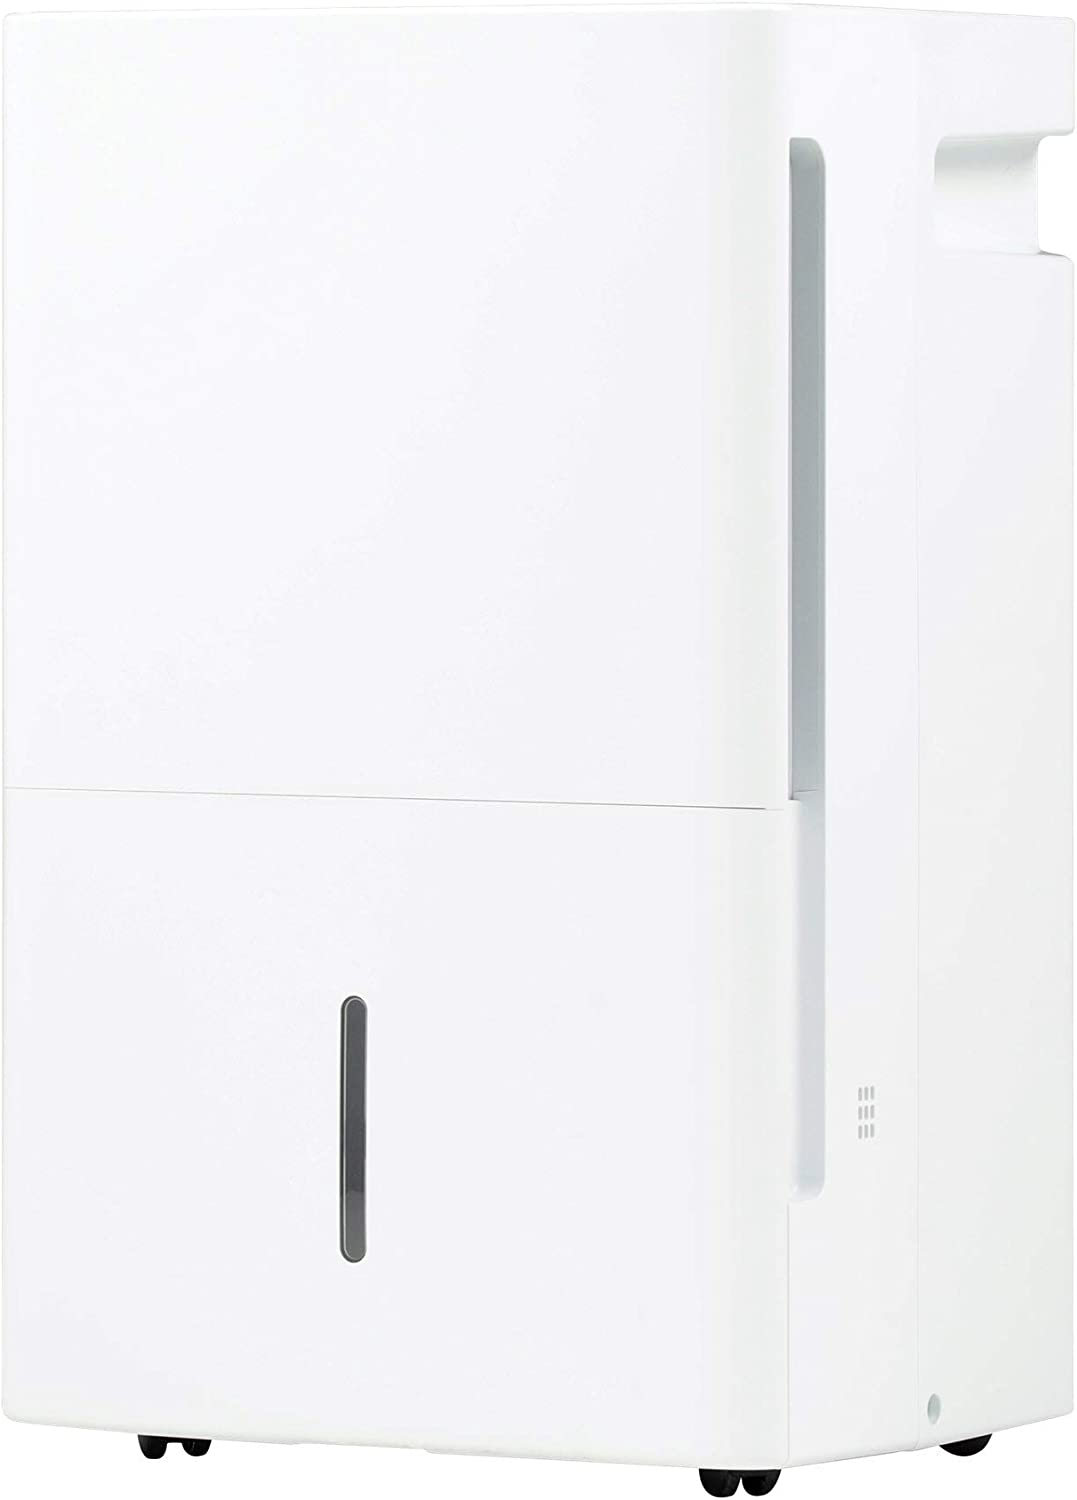 White GE ADEL35LZ-GE 35 Pint Energy Star Dehumidifier with Digital Controls for Very Damp Rooms